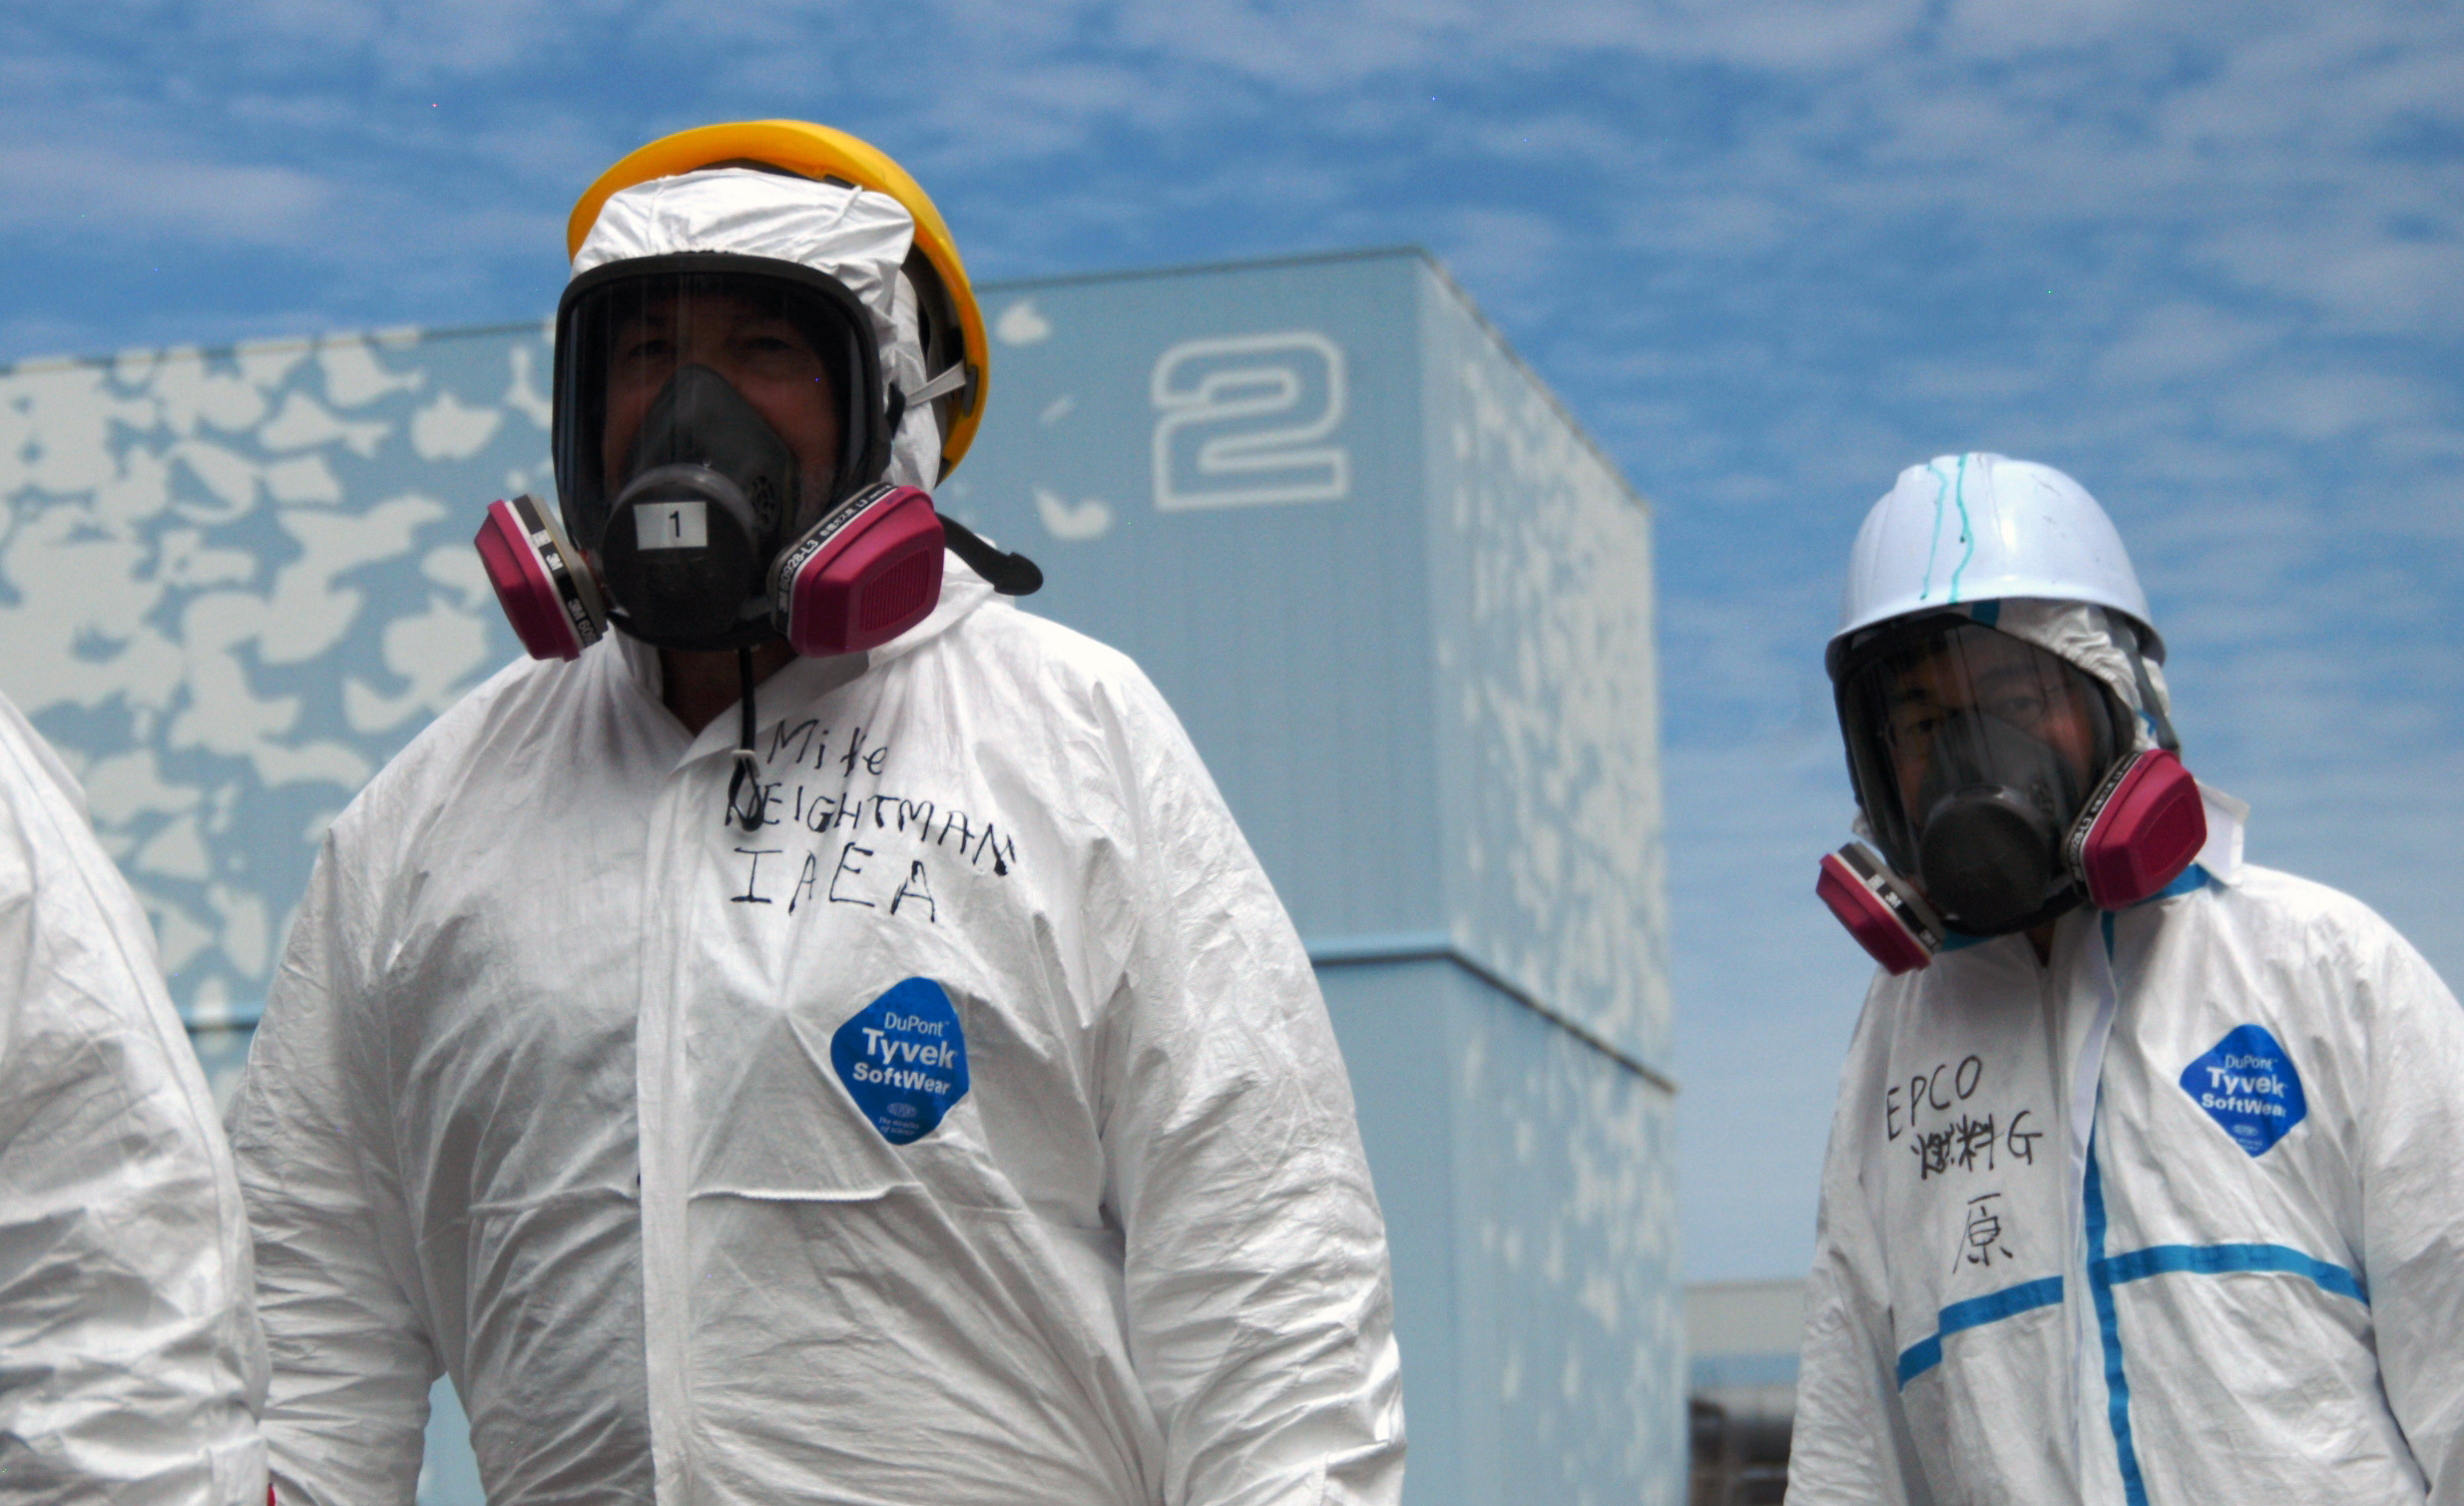 Investigators visiting the Fukushima Daiichi nuclear power plant in May 2011. Image credit: Greg Webb / IAEA